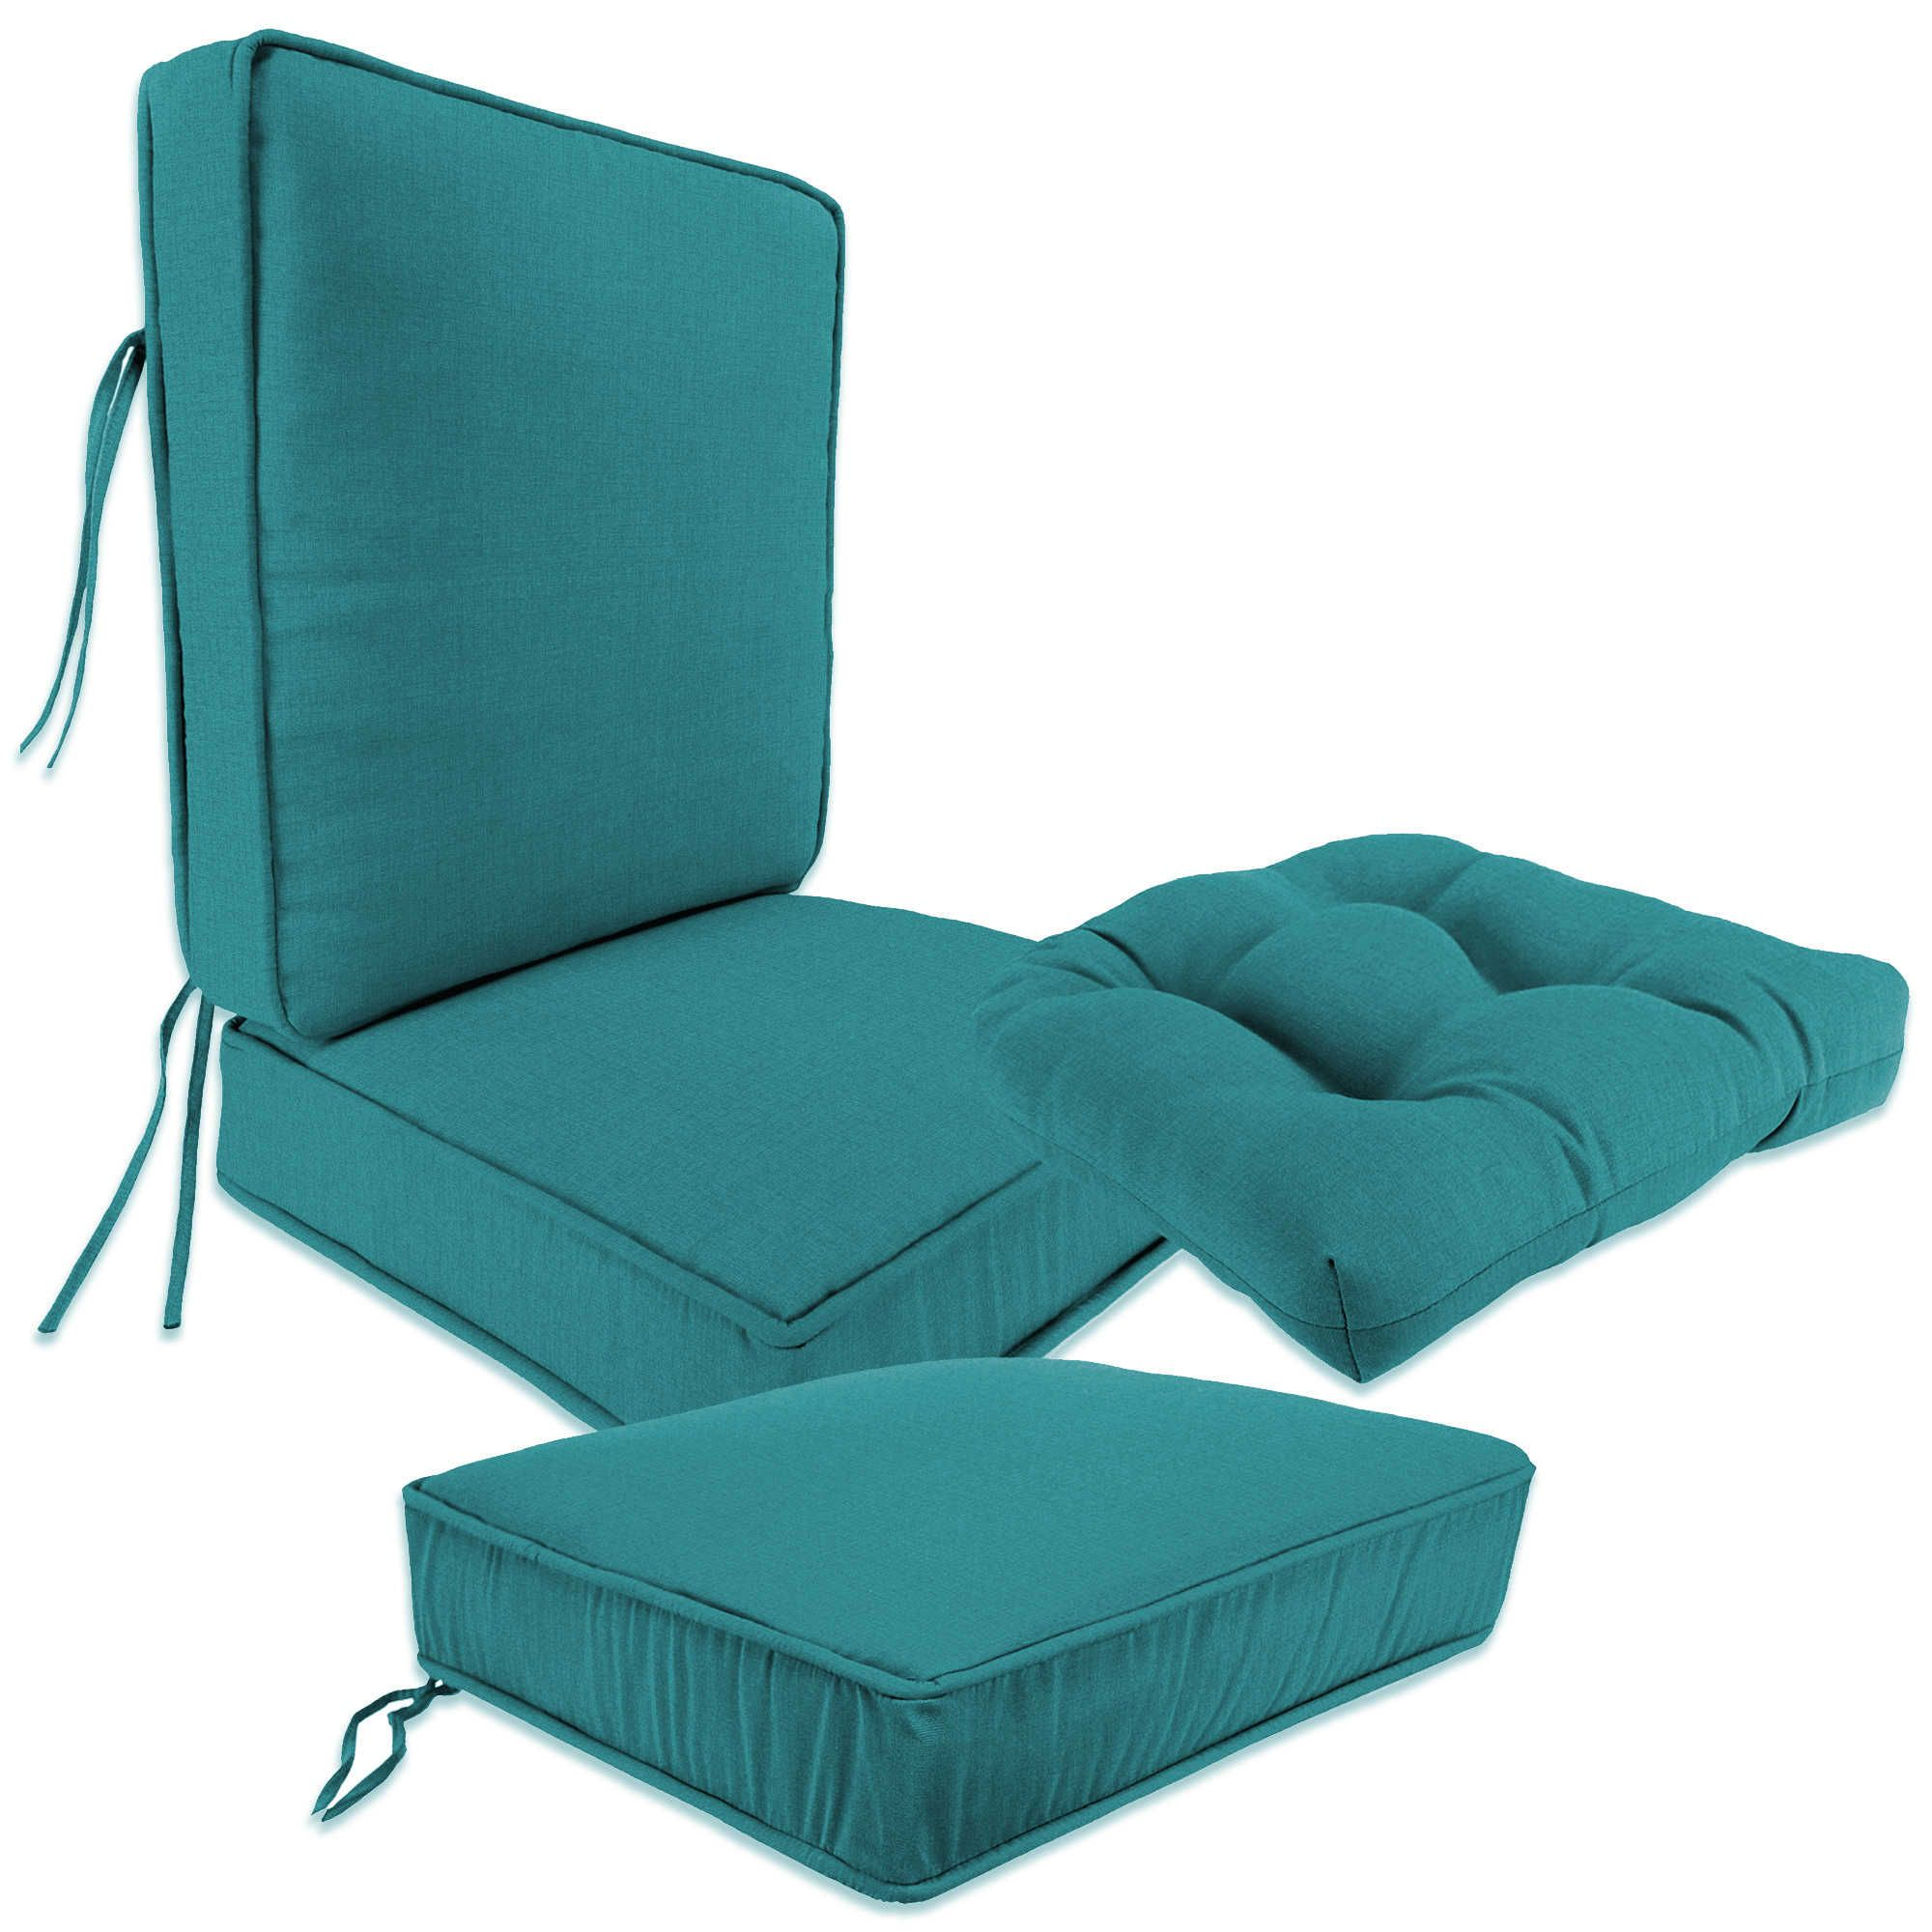 Pdp main image · outdoor cushions and pillowschair